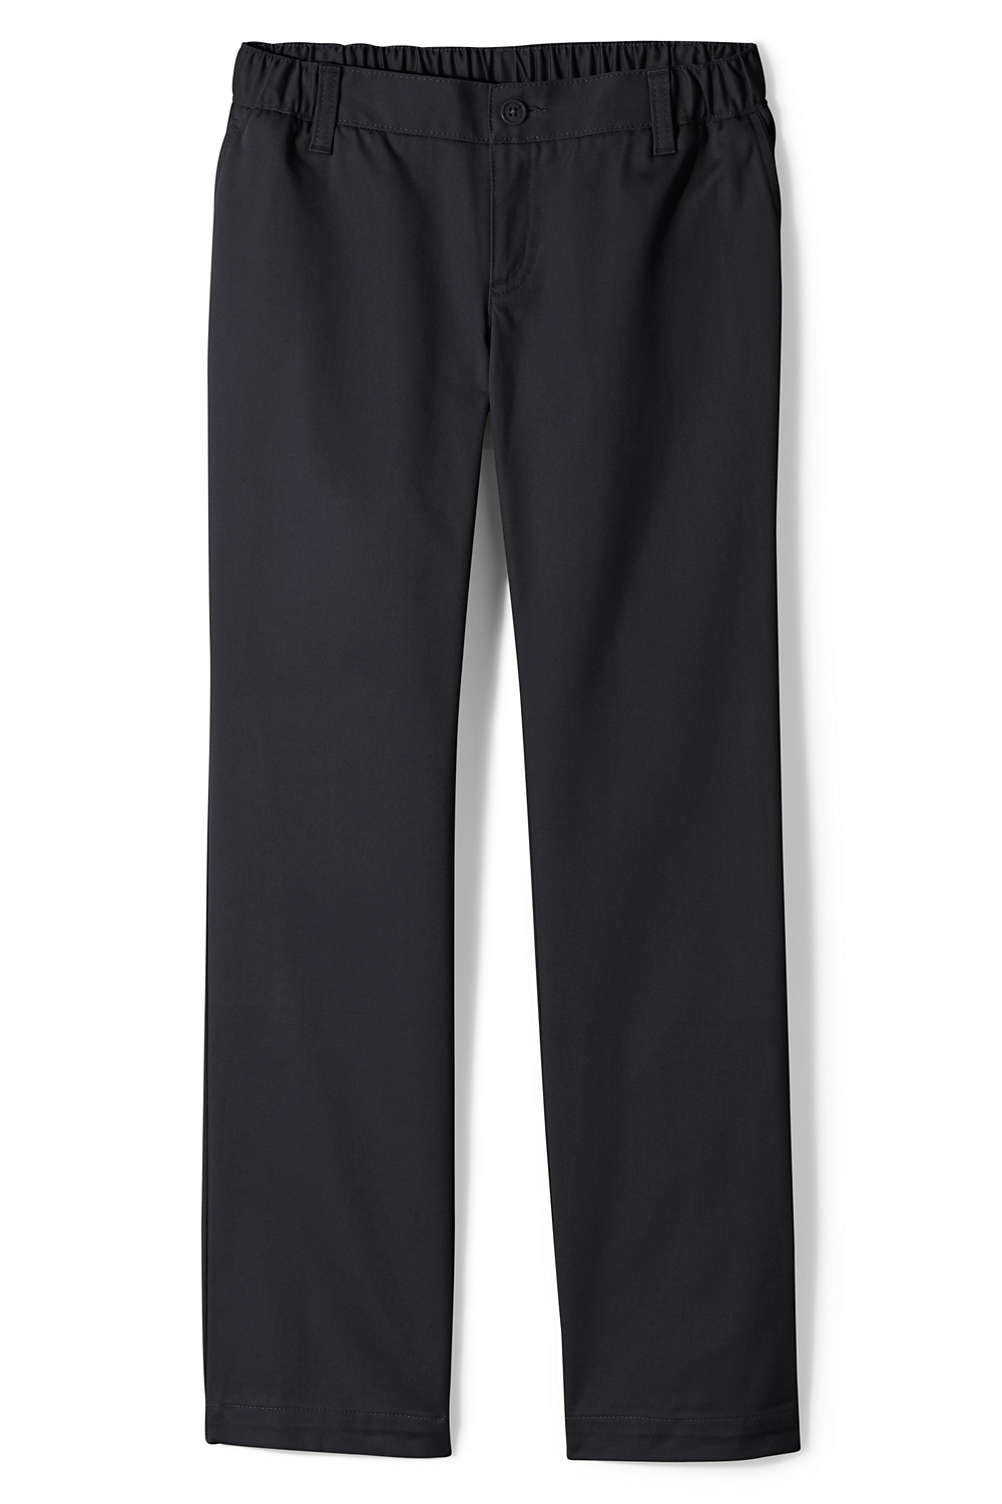 345367c9ae2 Girls Perfect Fit Iron Knee Blend Elastic Waist Chino Pants from Lands  End